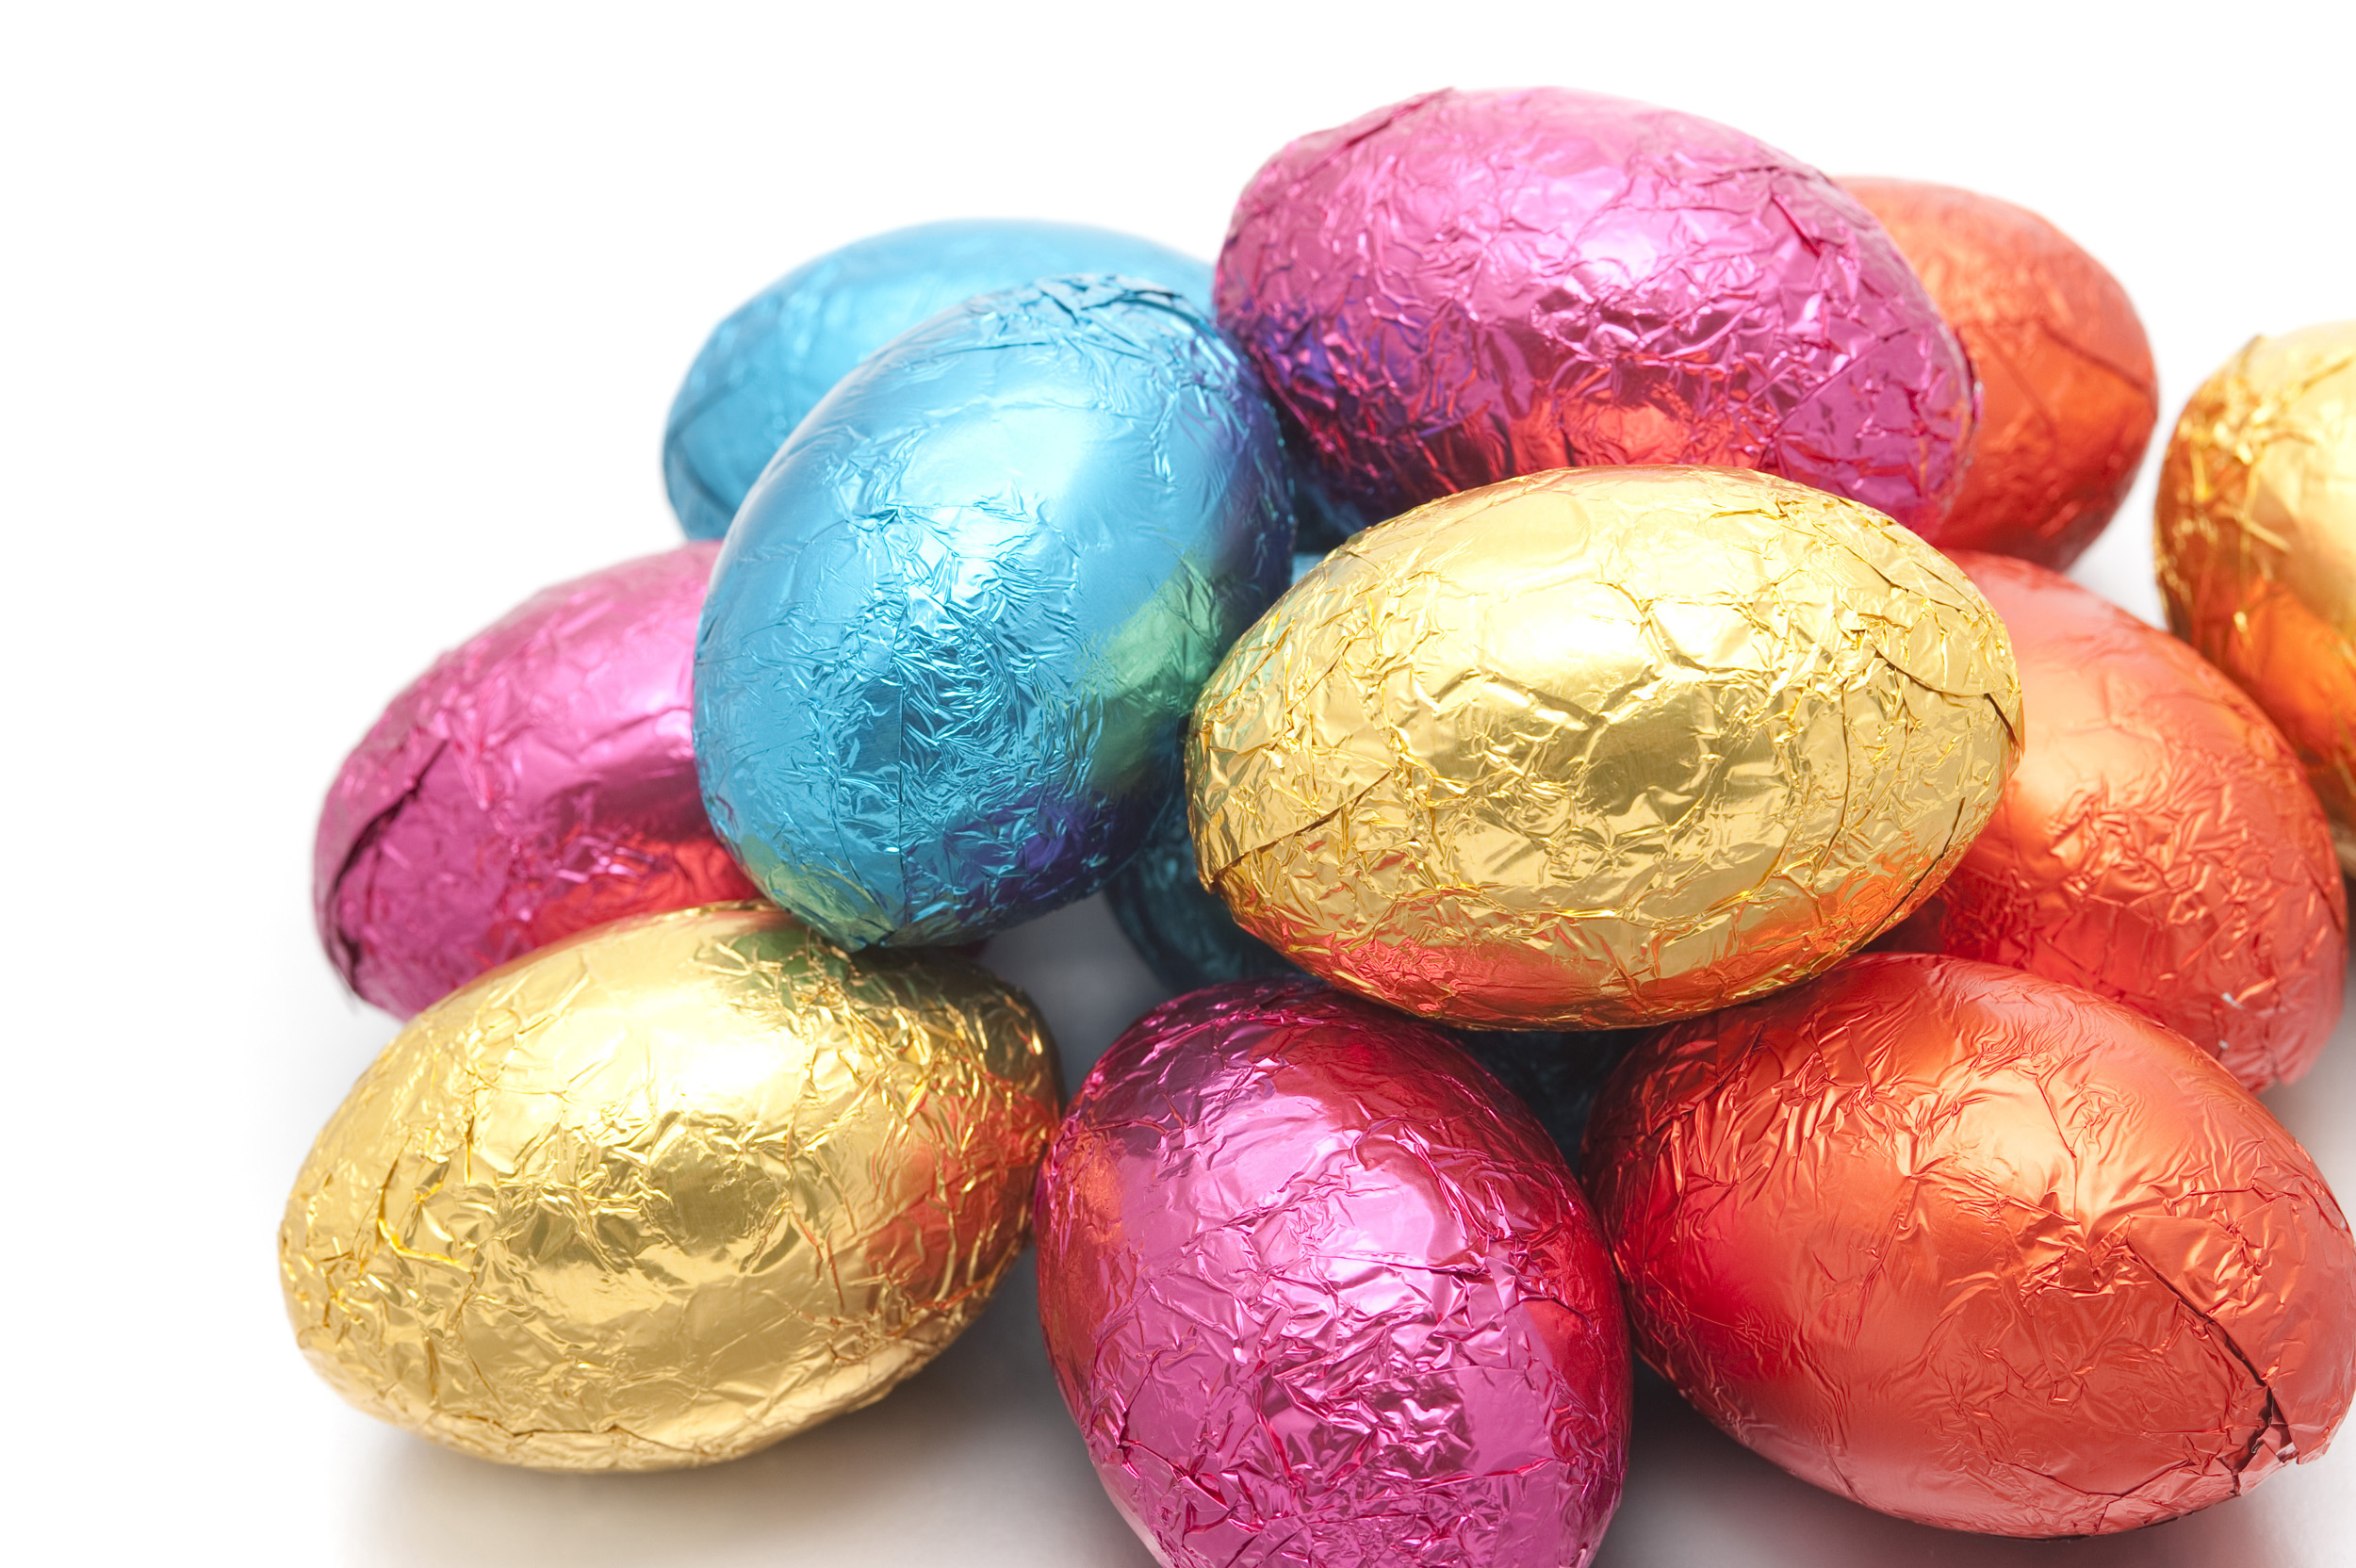 Colourful Foil Easter Egg Pile Creative Commons Stock Image